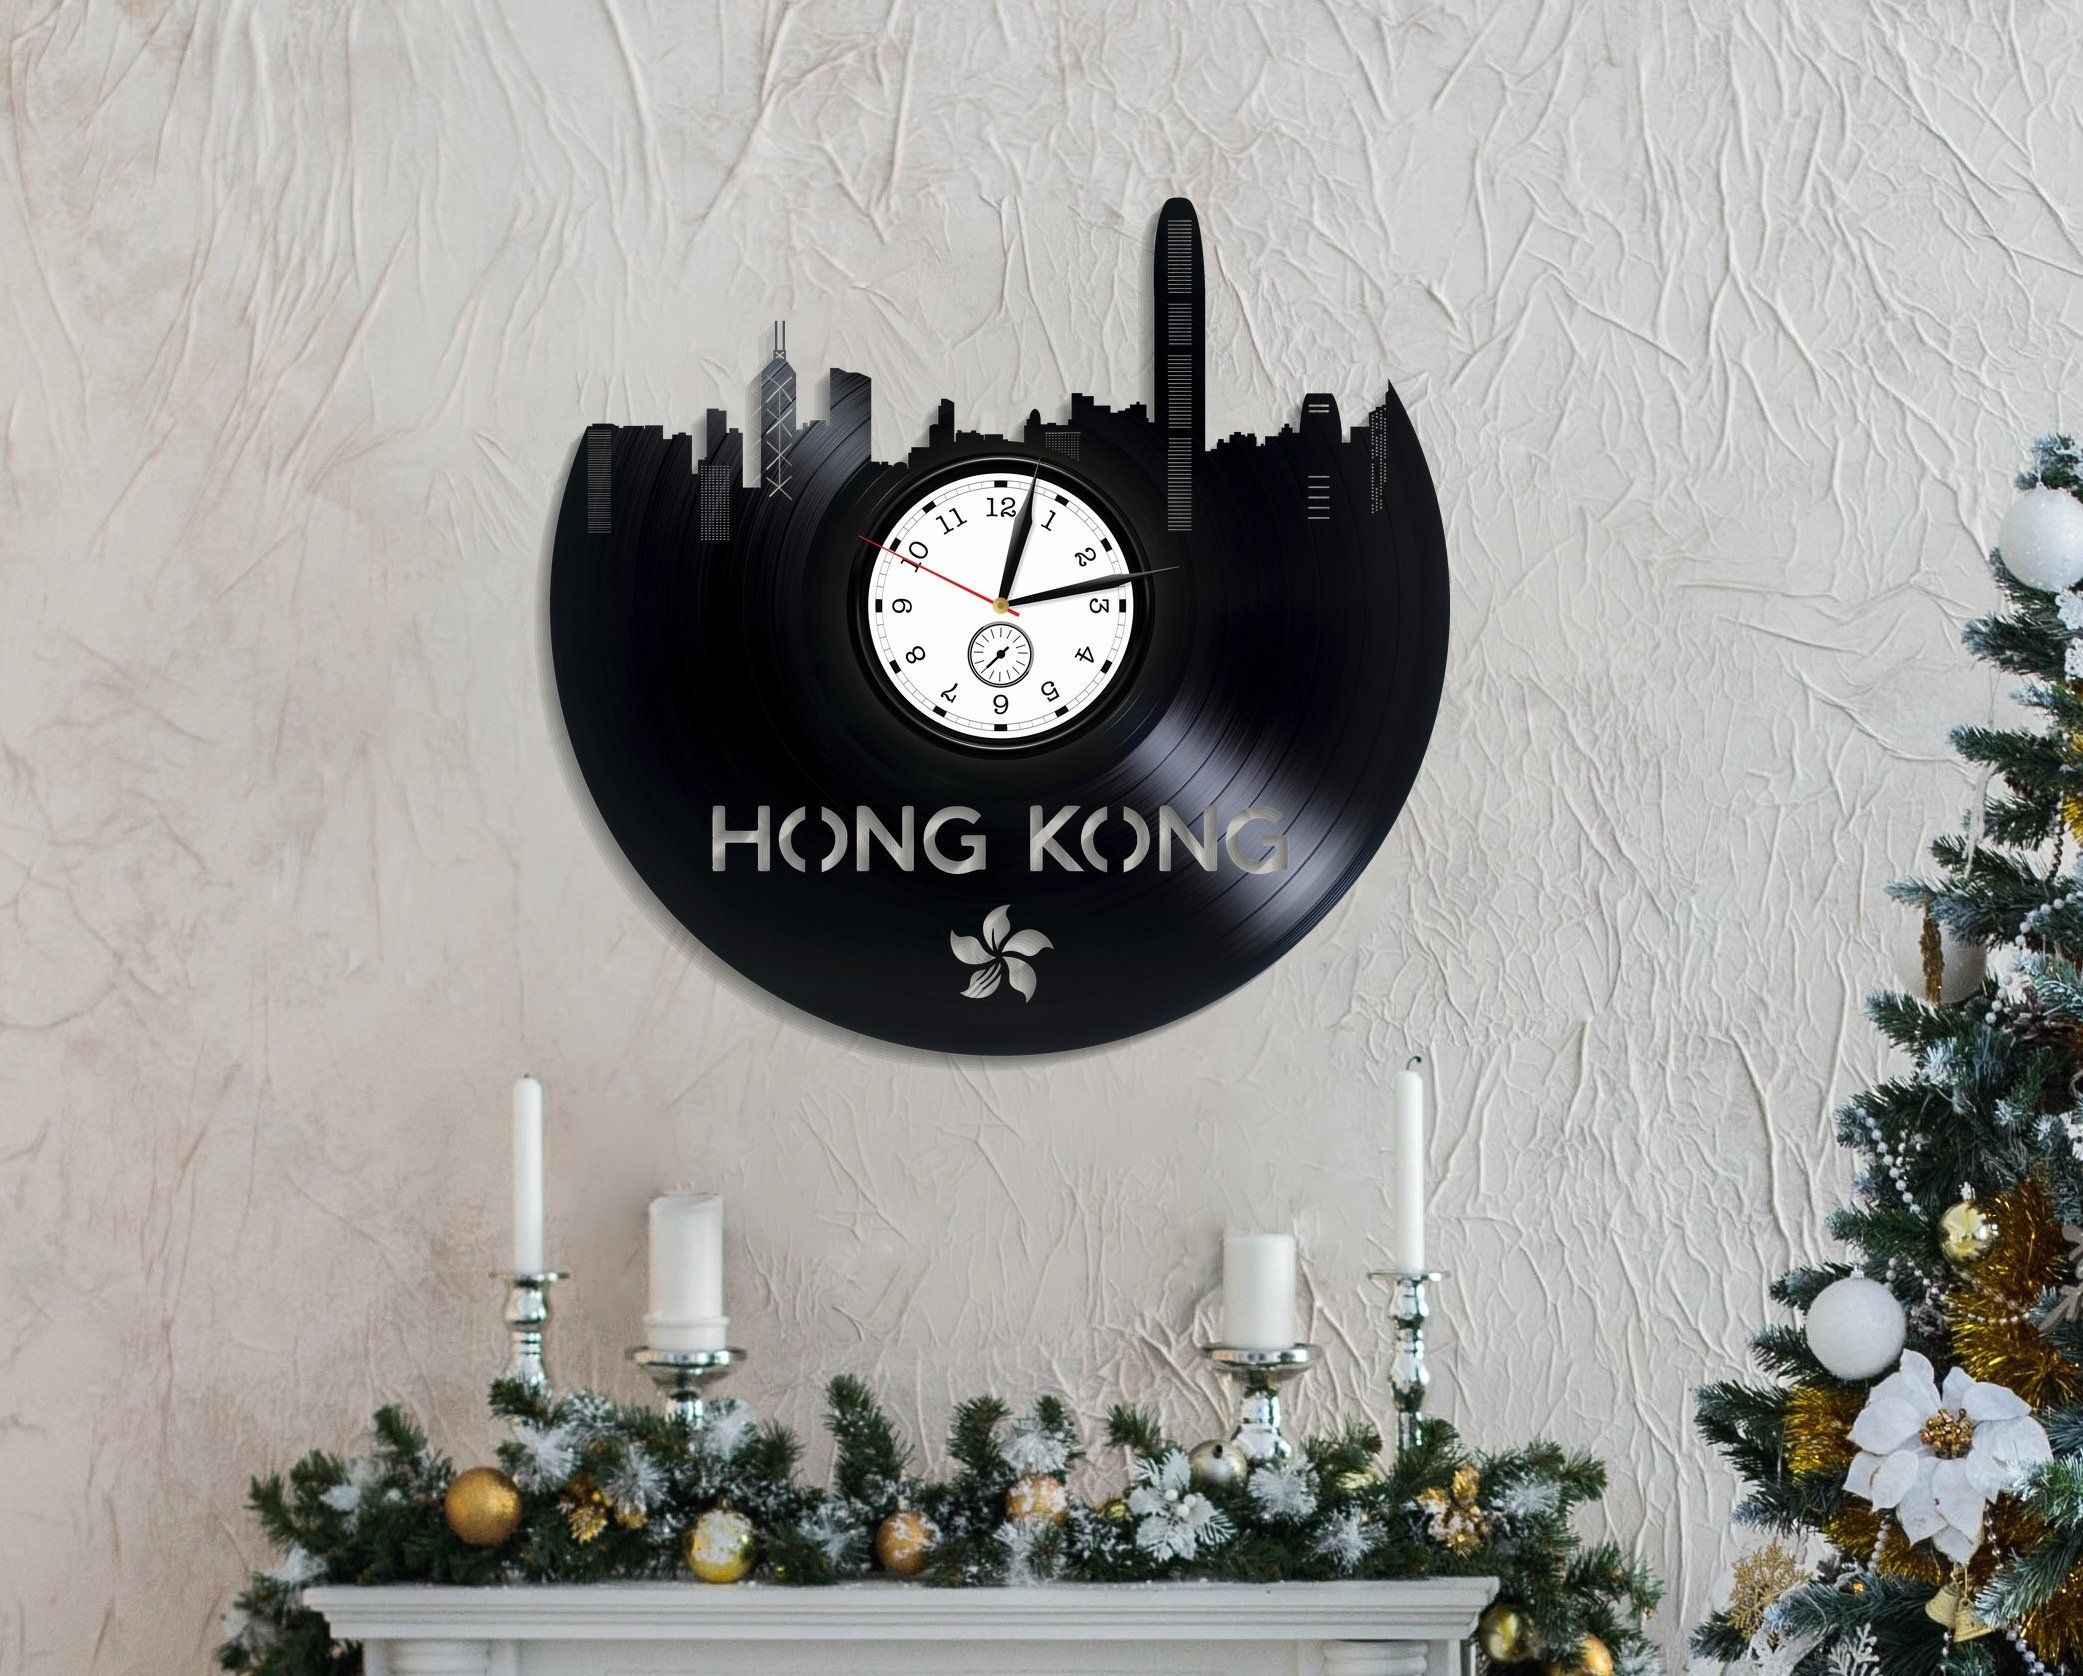 Hong Kong City Art Birthday Gift For Her Wall Clock Modern Travel Room Lp Retro Vinyl Record Vintage By DforDream On